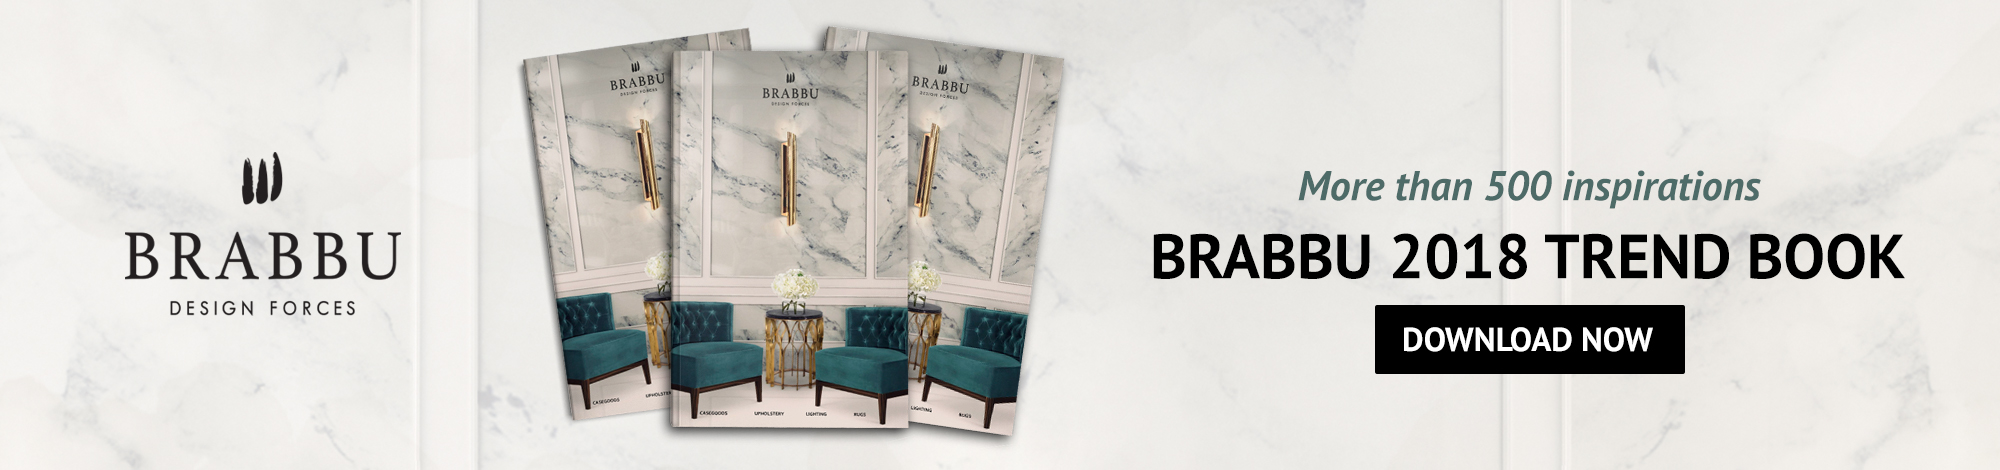 BRABBU Catalogue tom dixon Tom Dixon Opens A Stunning Showroom In Milan Design Week 2019  1C5EB82328DCFD5BD10428DB124BD945082C079483CACCDD2D pimgpsh fullsize distr